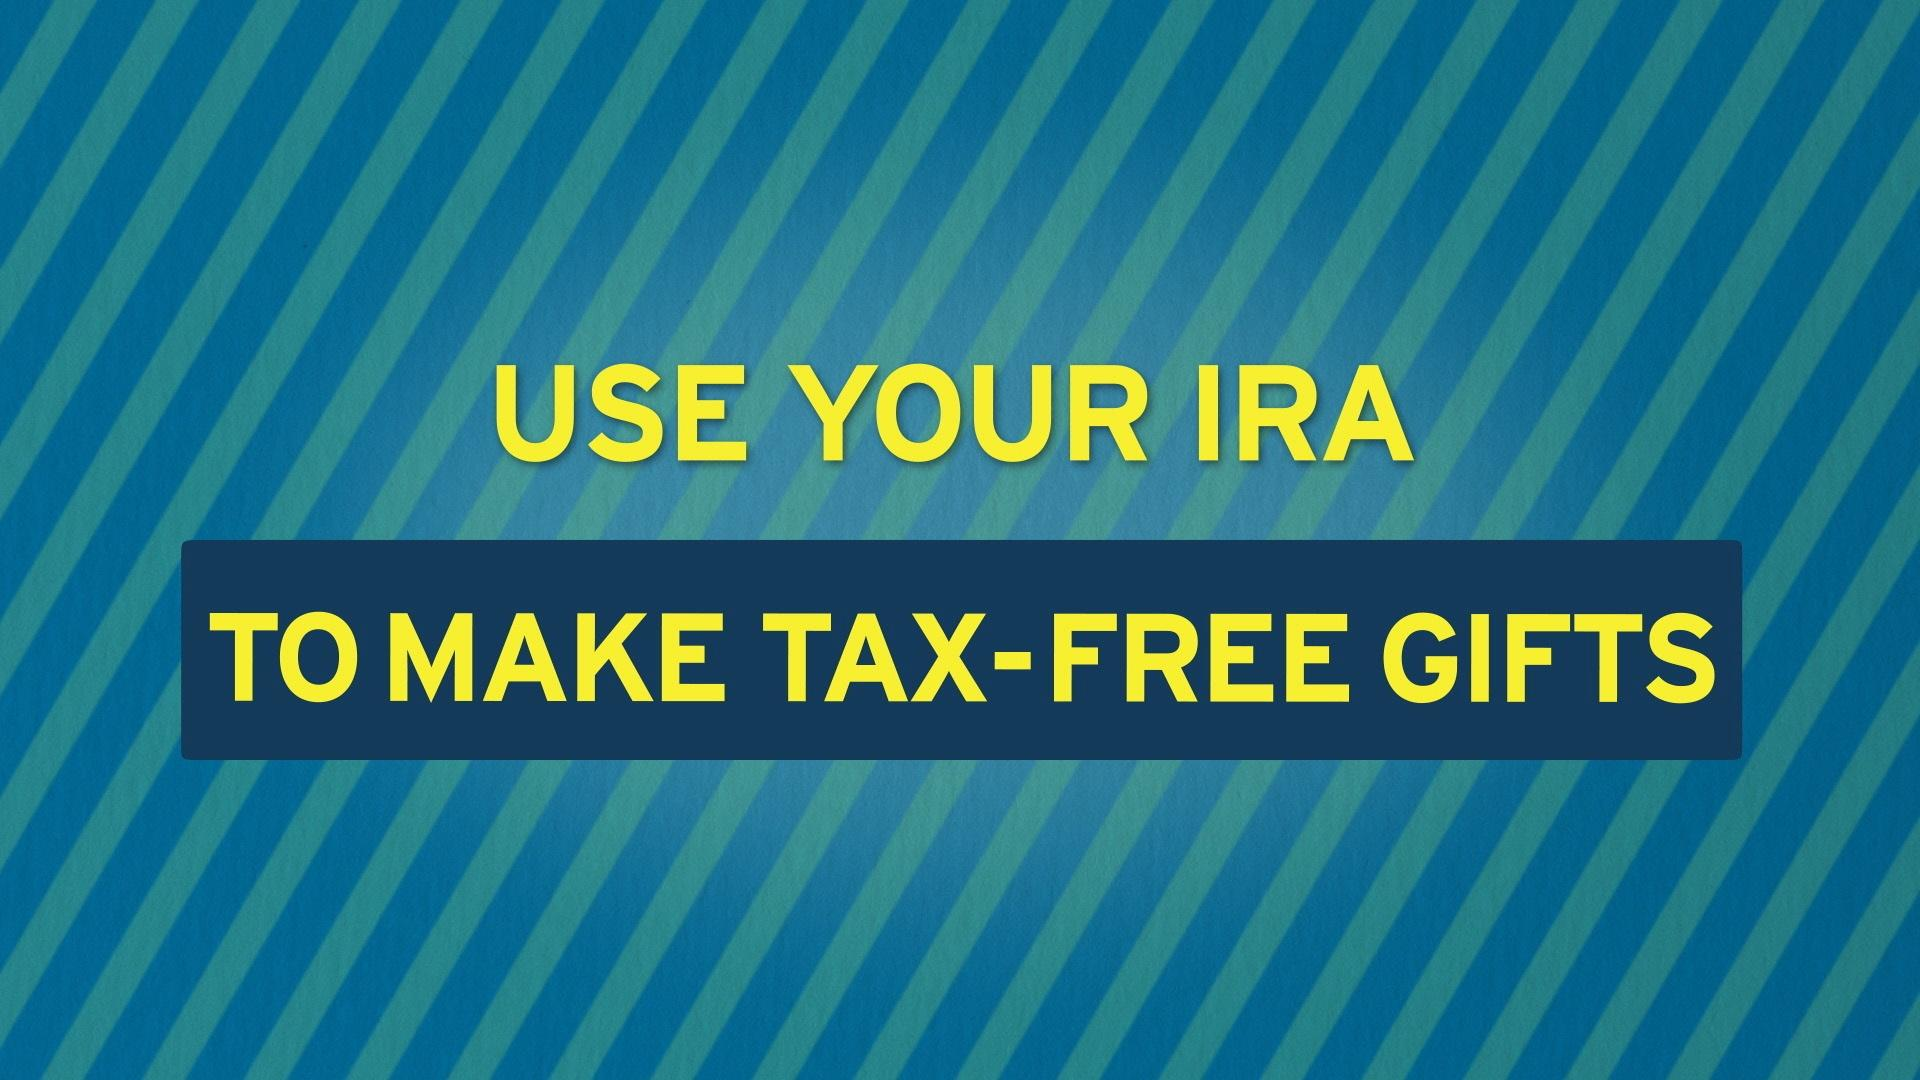 Use your IRA to make tax-free gifts